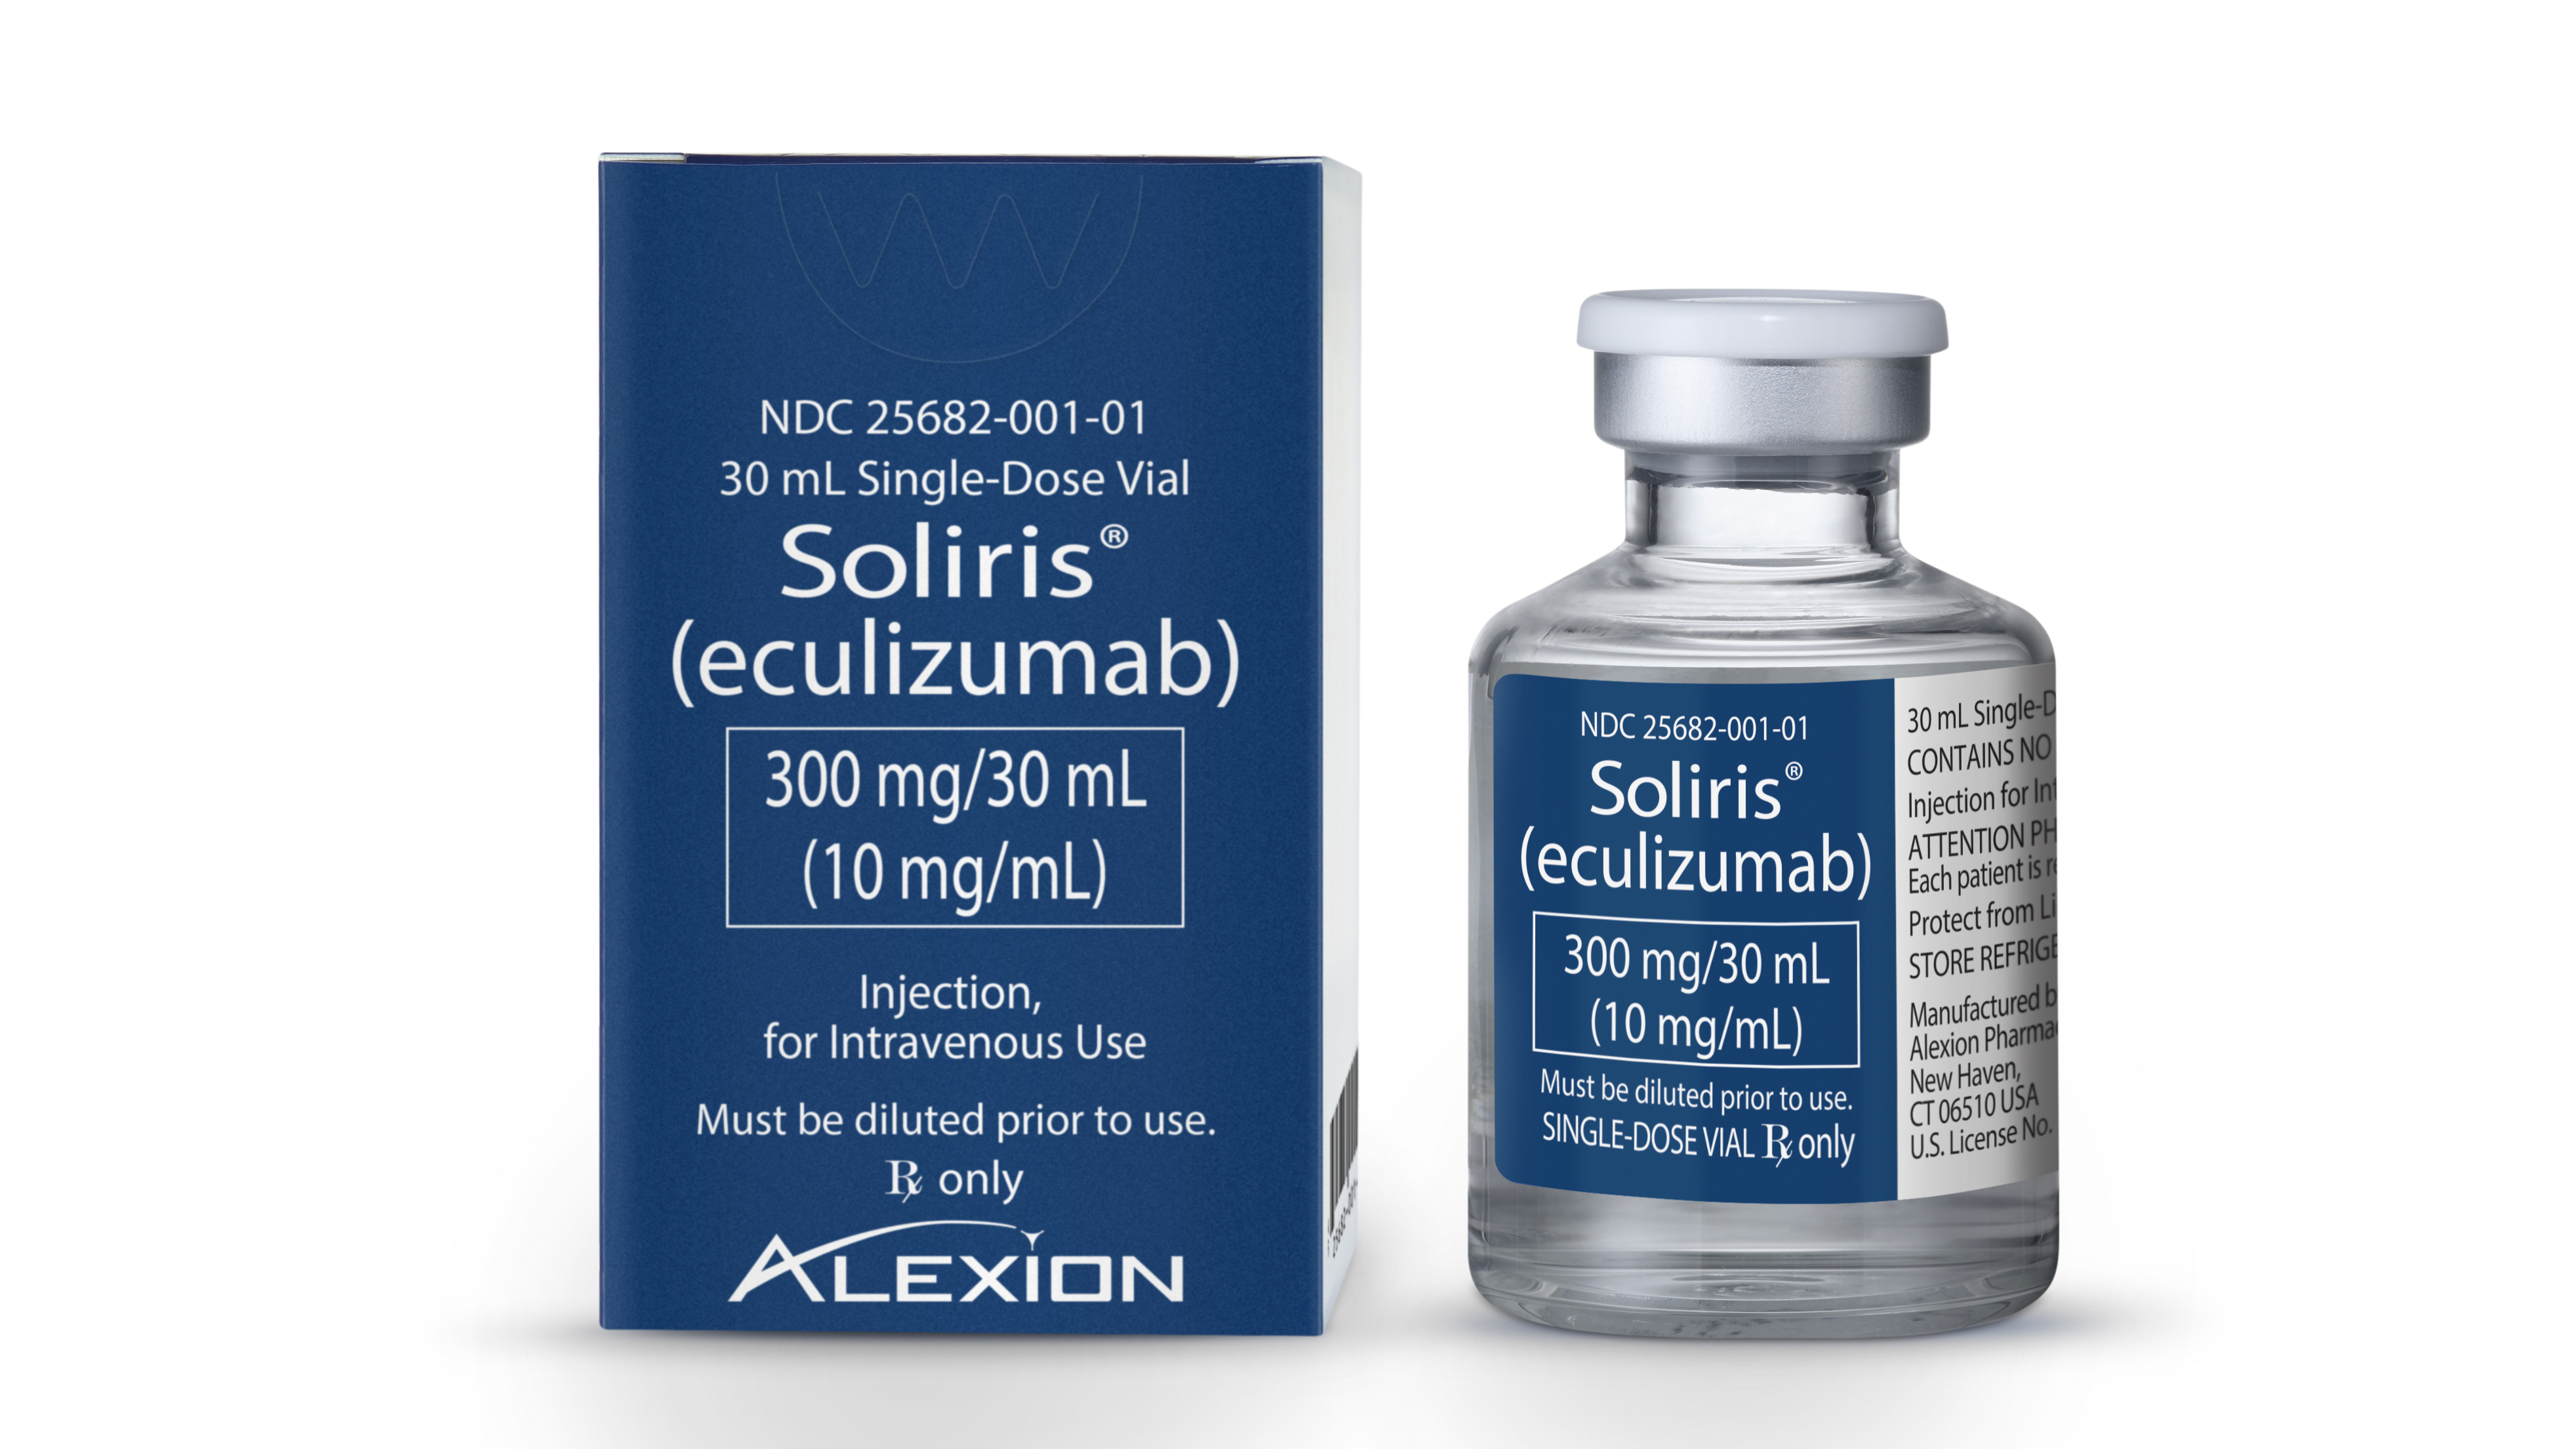 FDA Approves Soliris® (Eculizumab) for the Treatment of